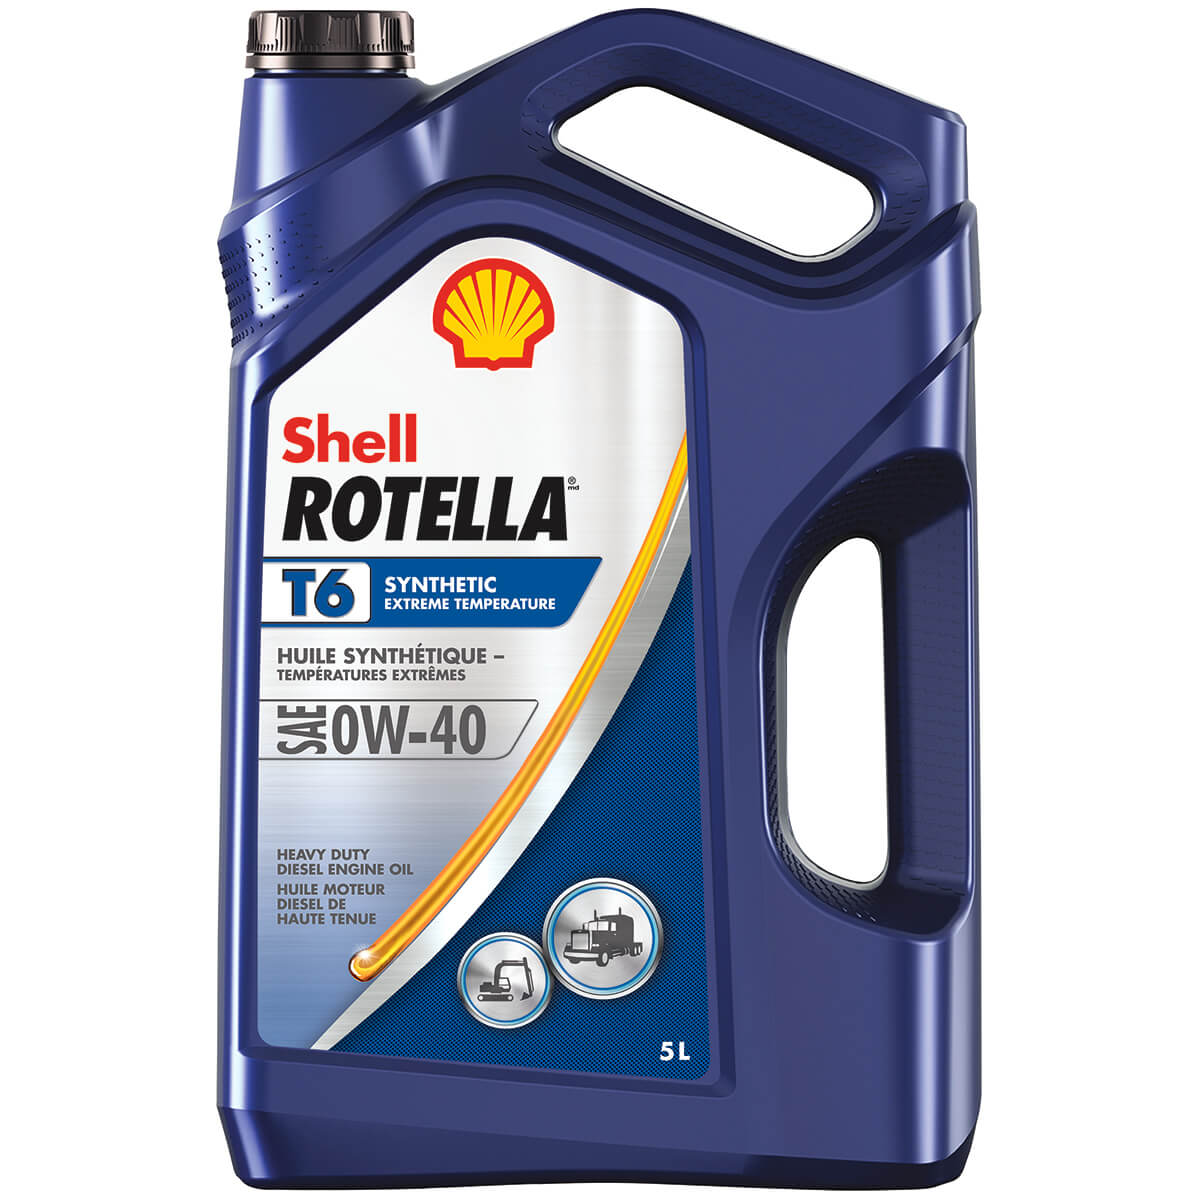 Shell Rotella T6 Triple Protection Synthetic 0W-40 - 5 L